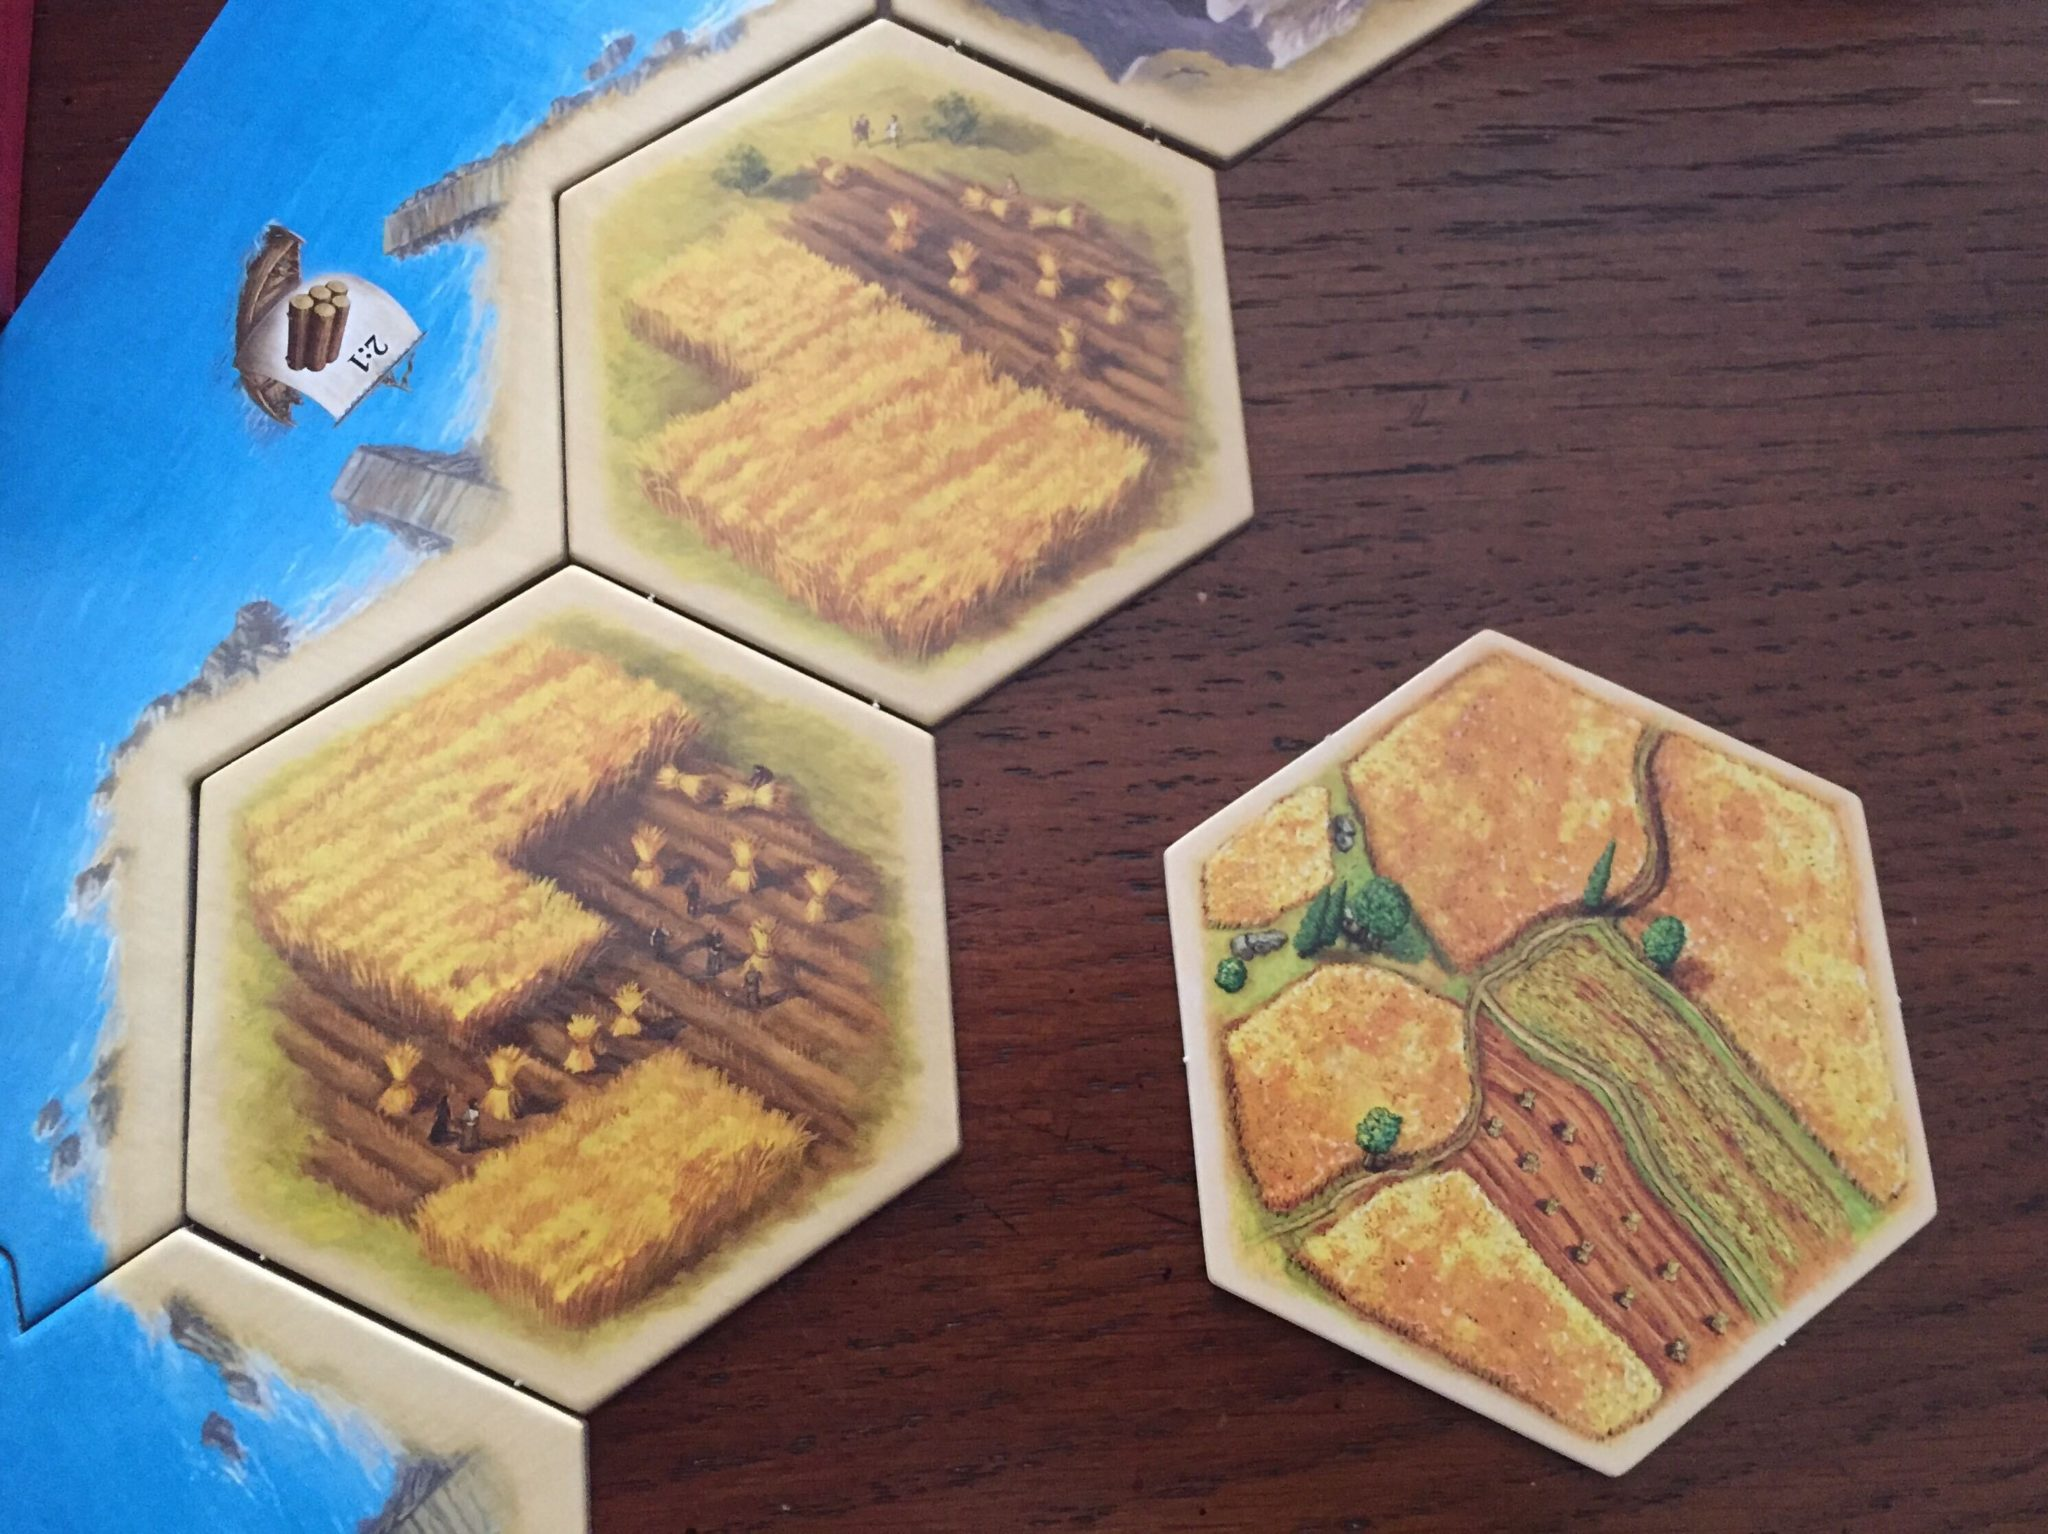 Three Catan Tiles sit in the frame. The two on the left are new art from Catan 25, the one on the right from the original game.  The new art looks more realistic.